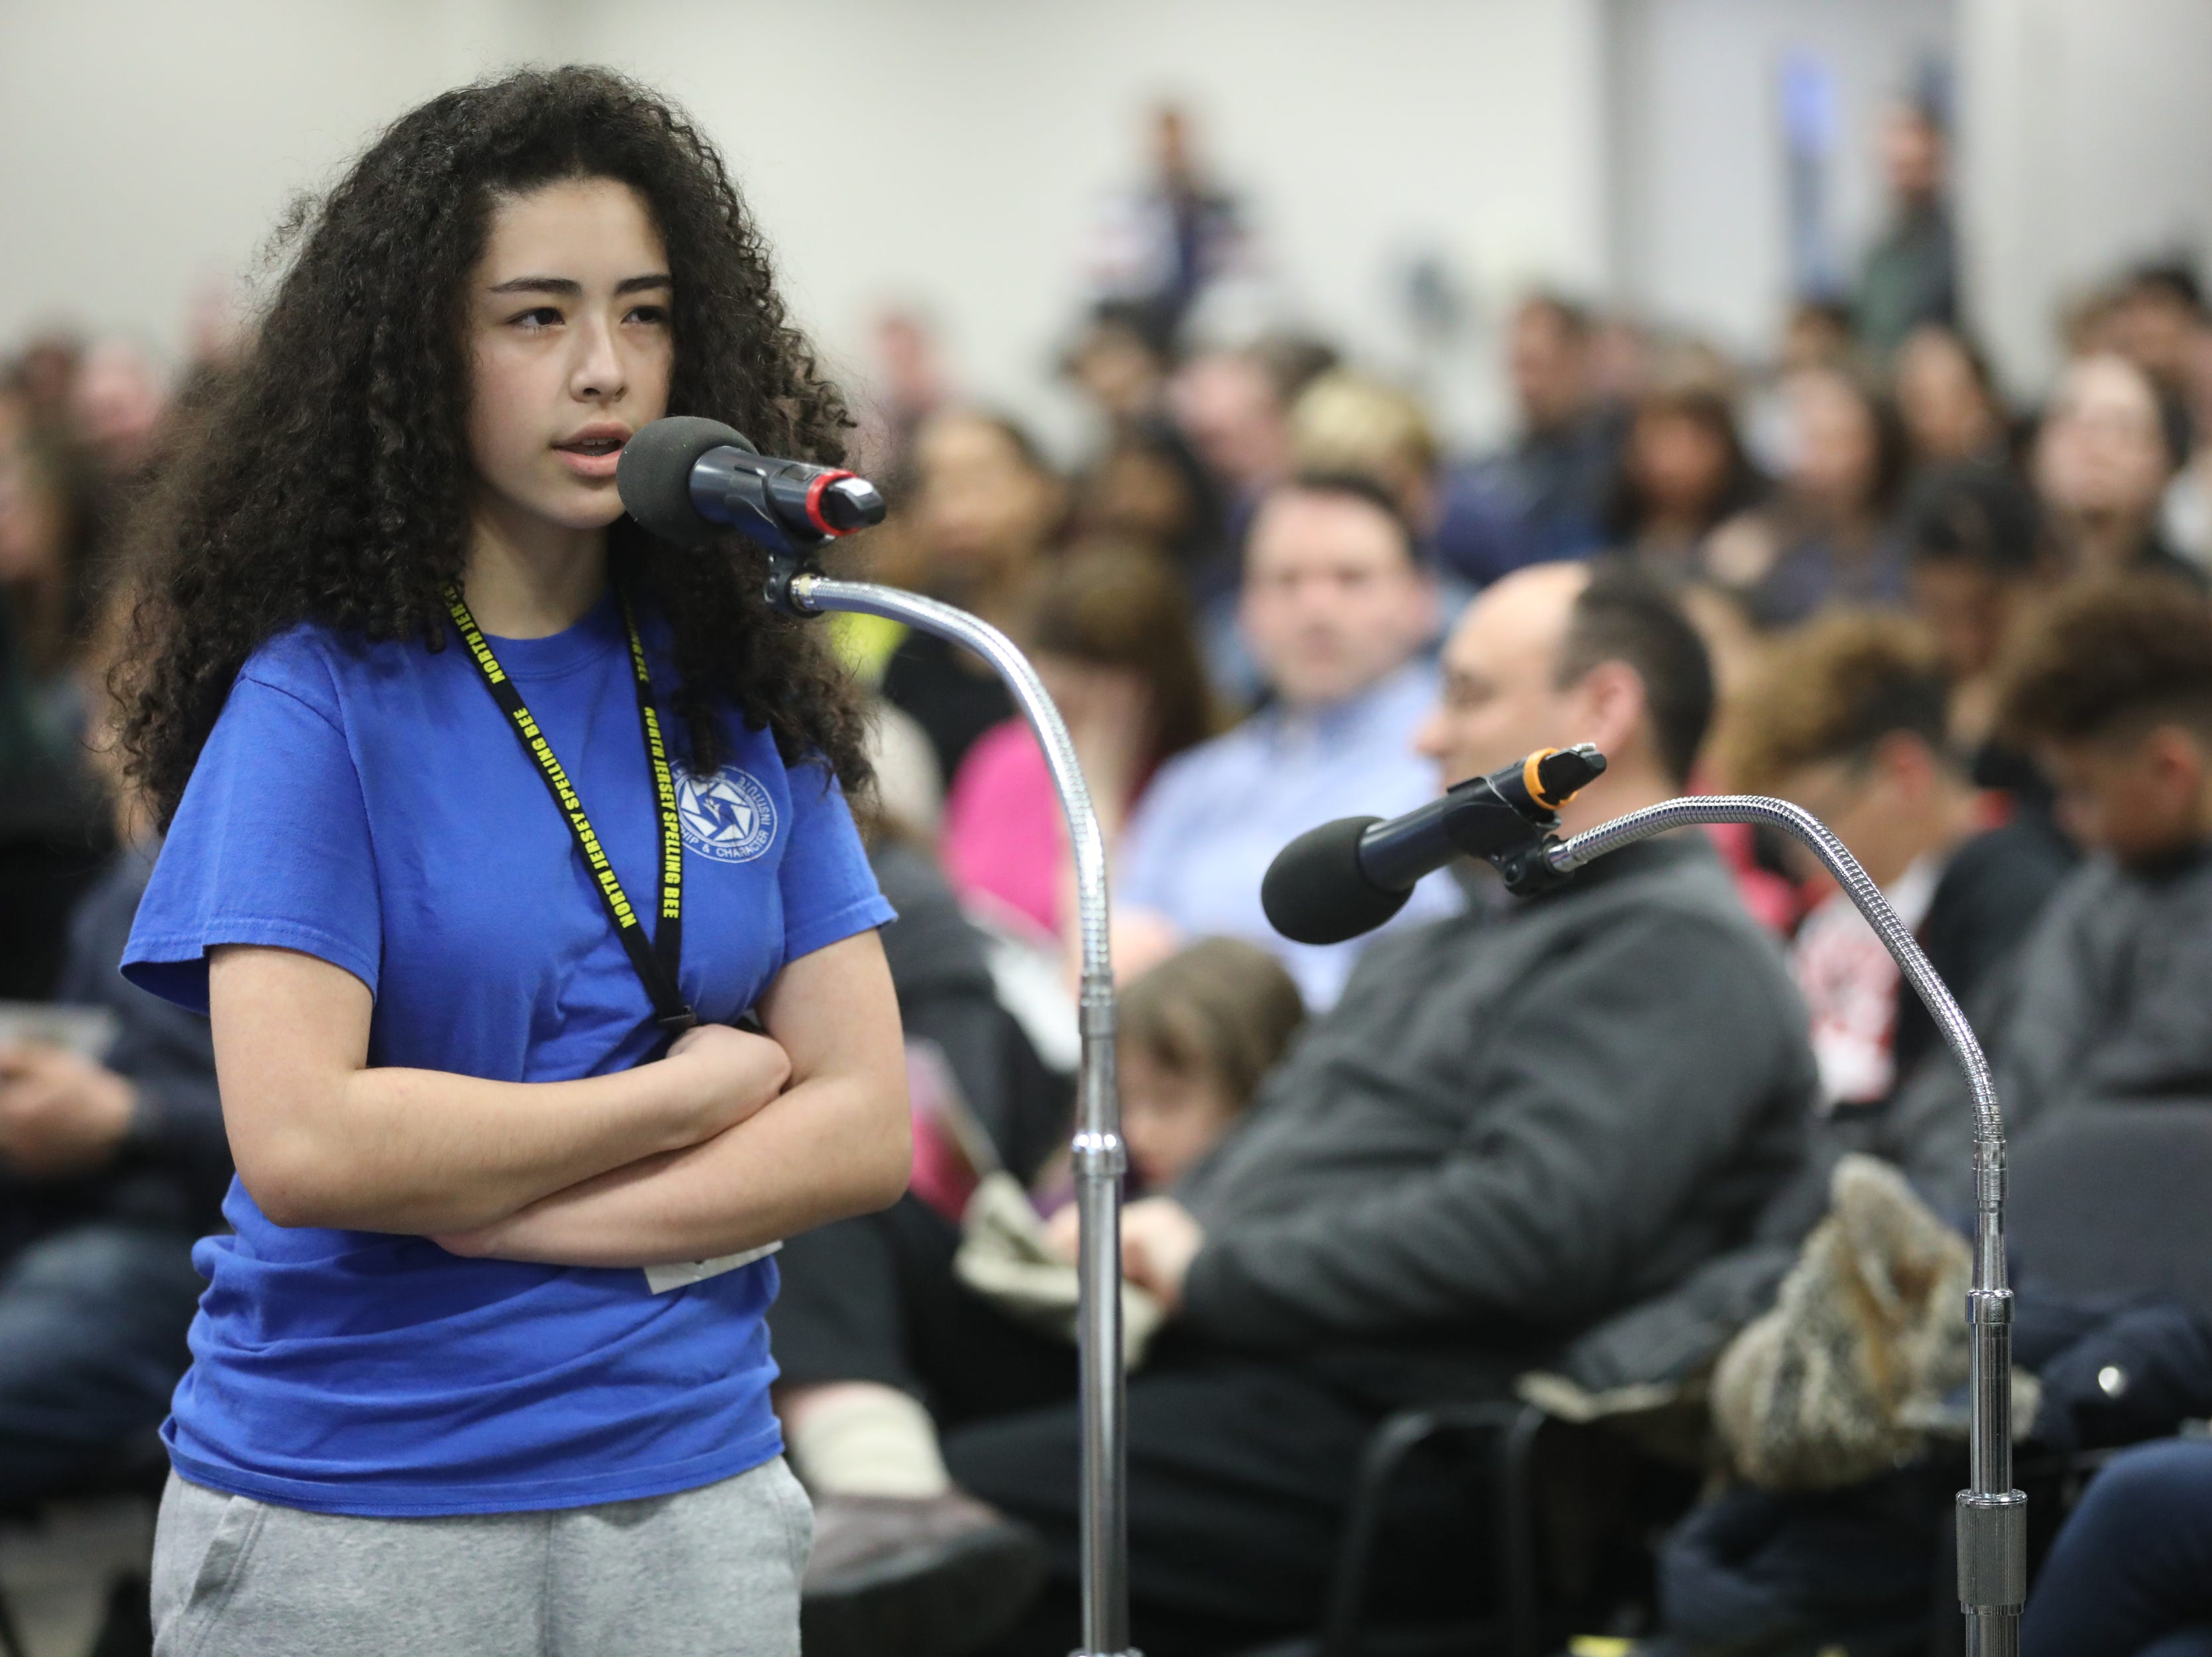 Bethany Lopez, of Passaic, competes in the first round of the 2019 North Jersey Spelling Bee, in Paramus. Thursday, March 14, 2019